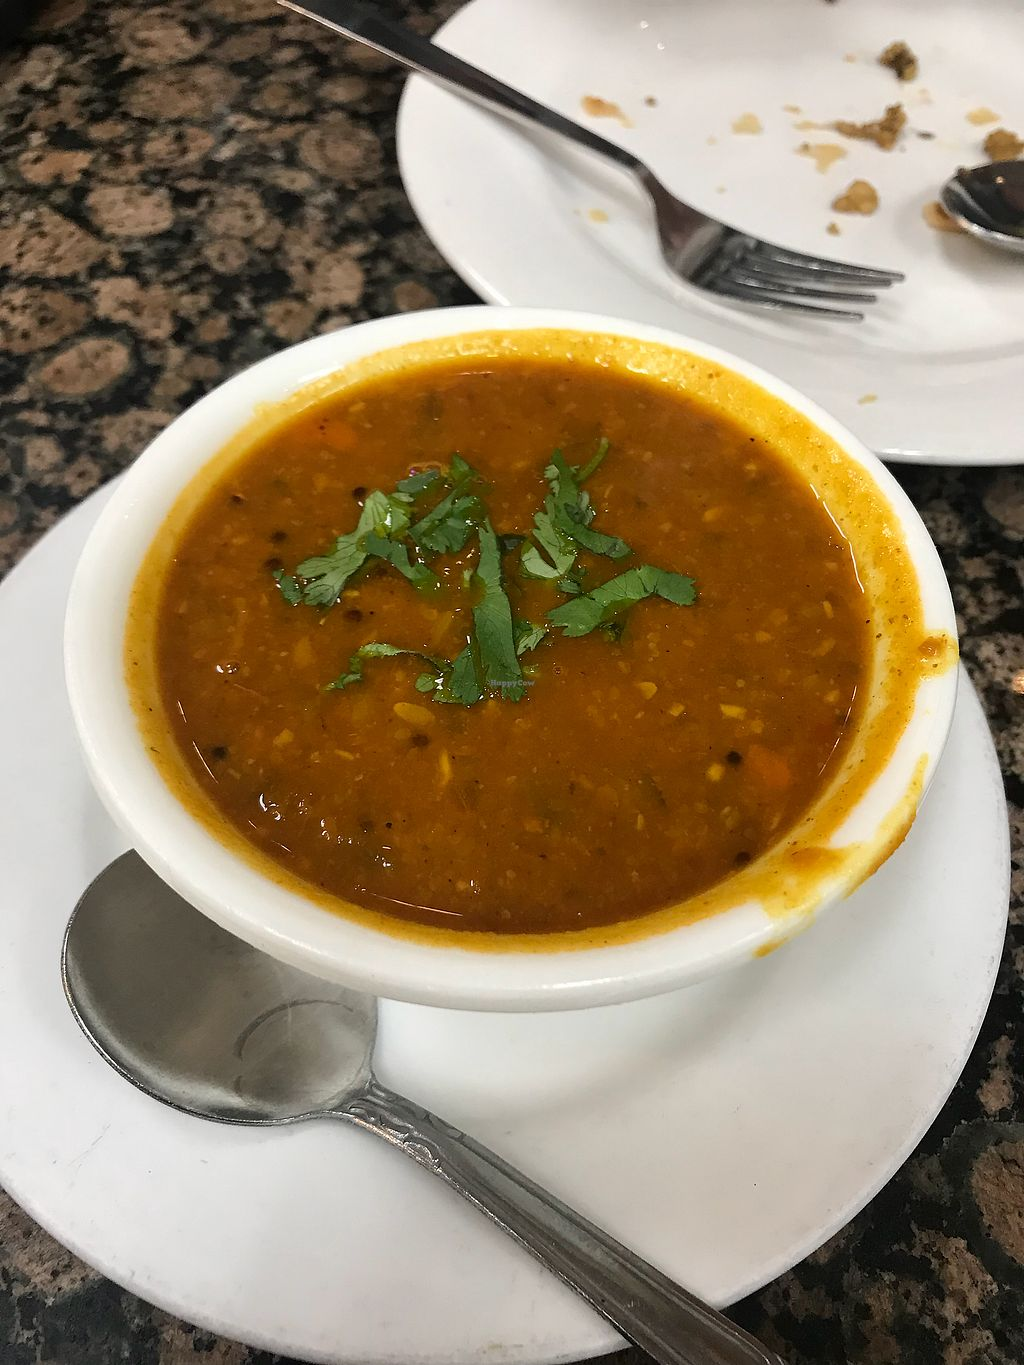 "Photo of Bhanu's Indian Grocery and Cuisine  by <a href=""/members/profile/Vegan_Ness"">Vegan_Ness</a> <br/>Lentil soup <br/> January 2, 2018  - <a href='/contact/abuse/image/39050/342268'>Report</a>"